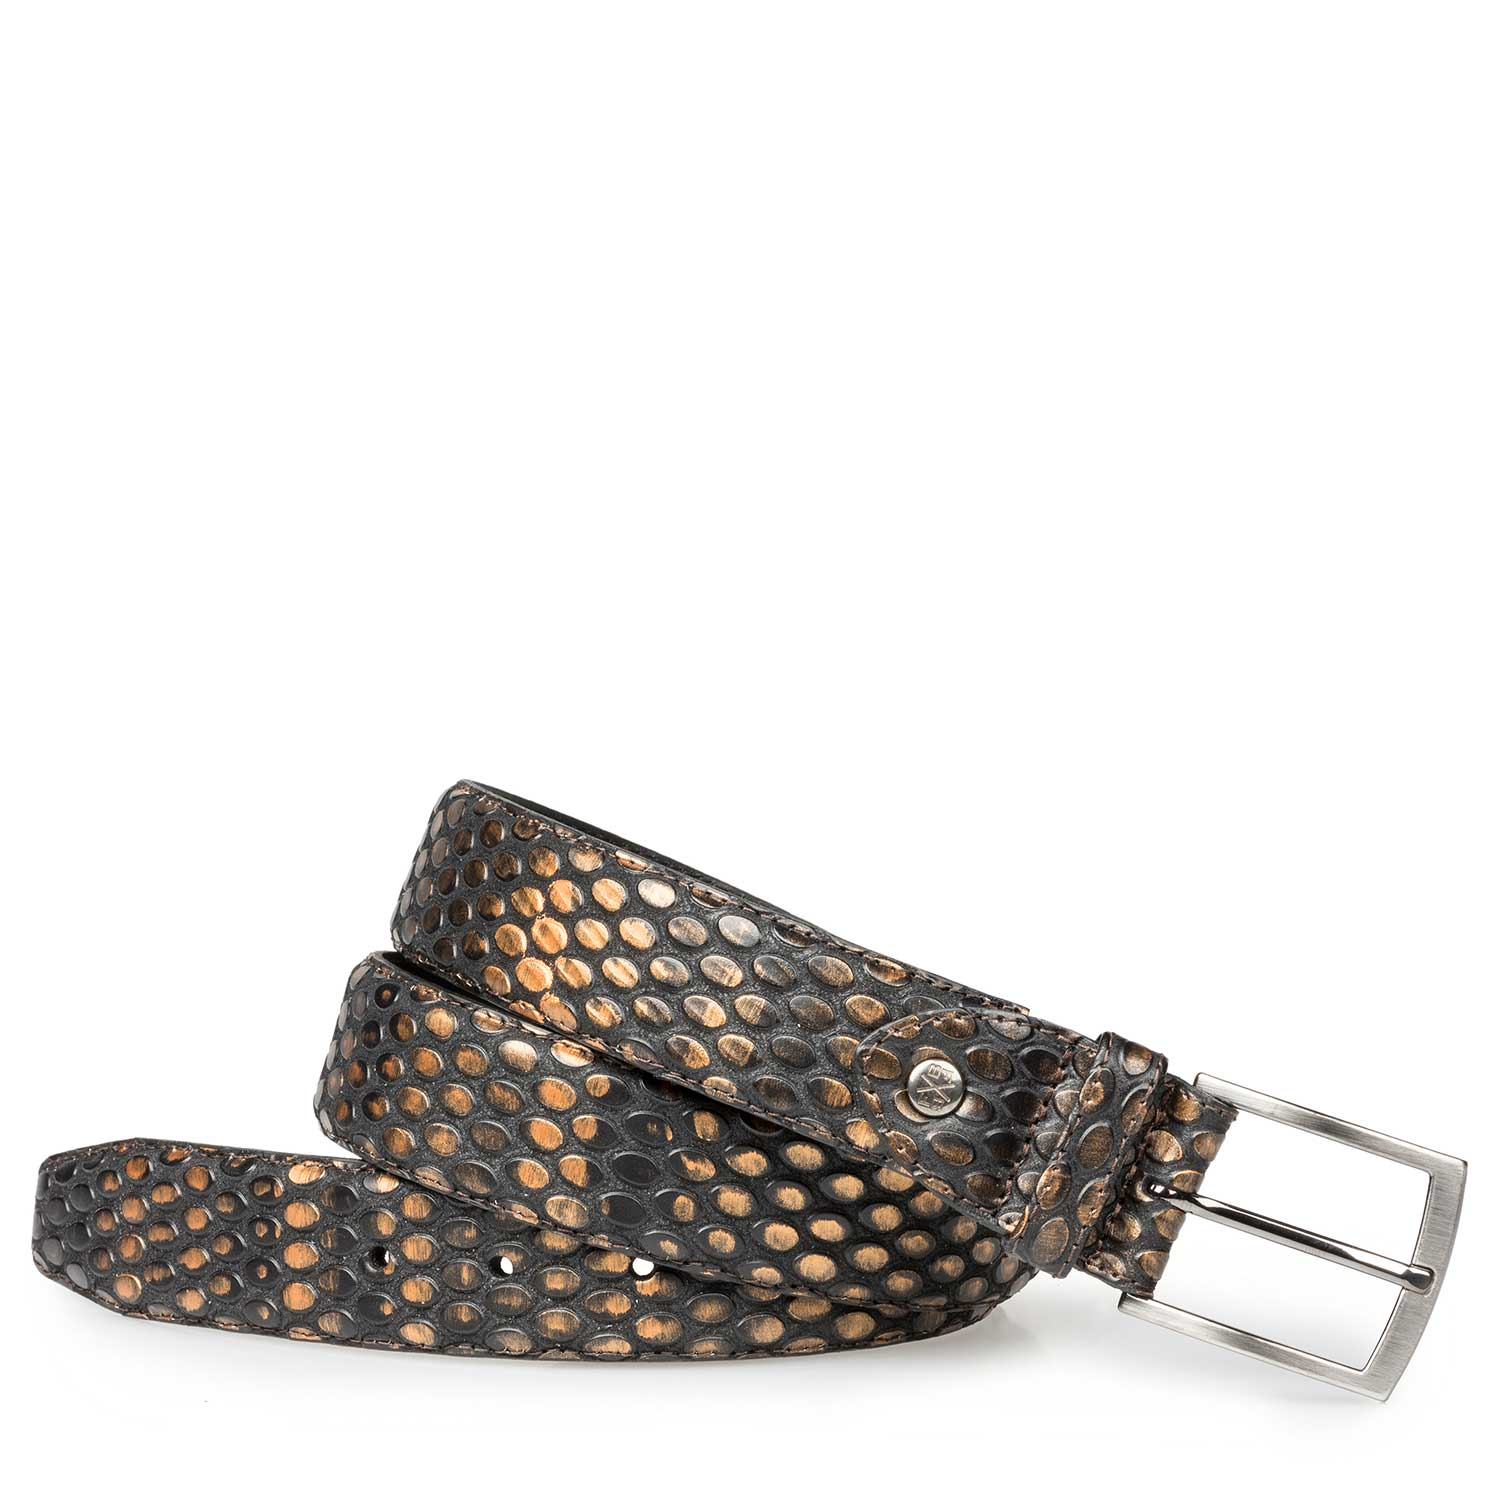 75190/12 - Bronze-coloured leather belt with coffee bean print